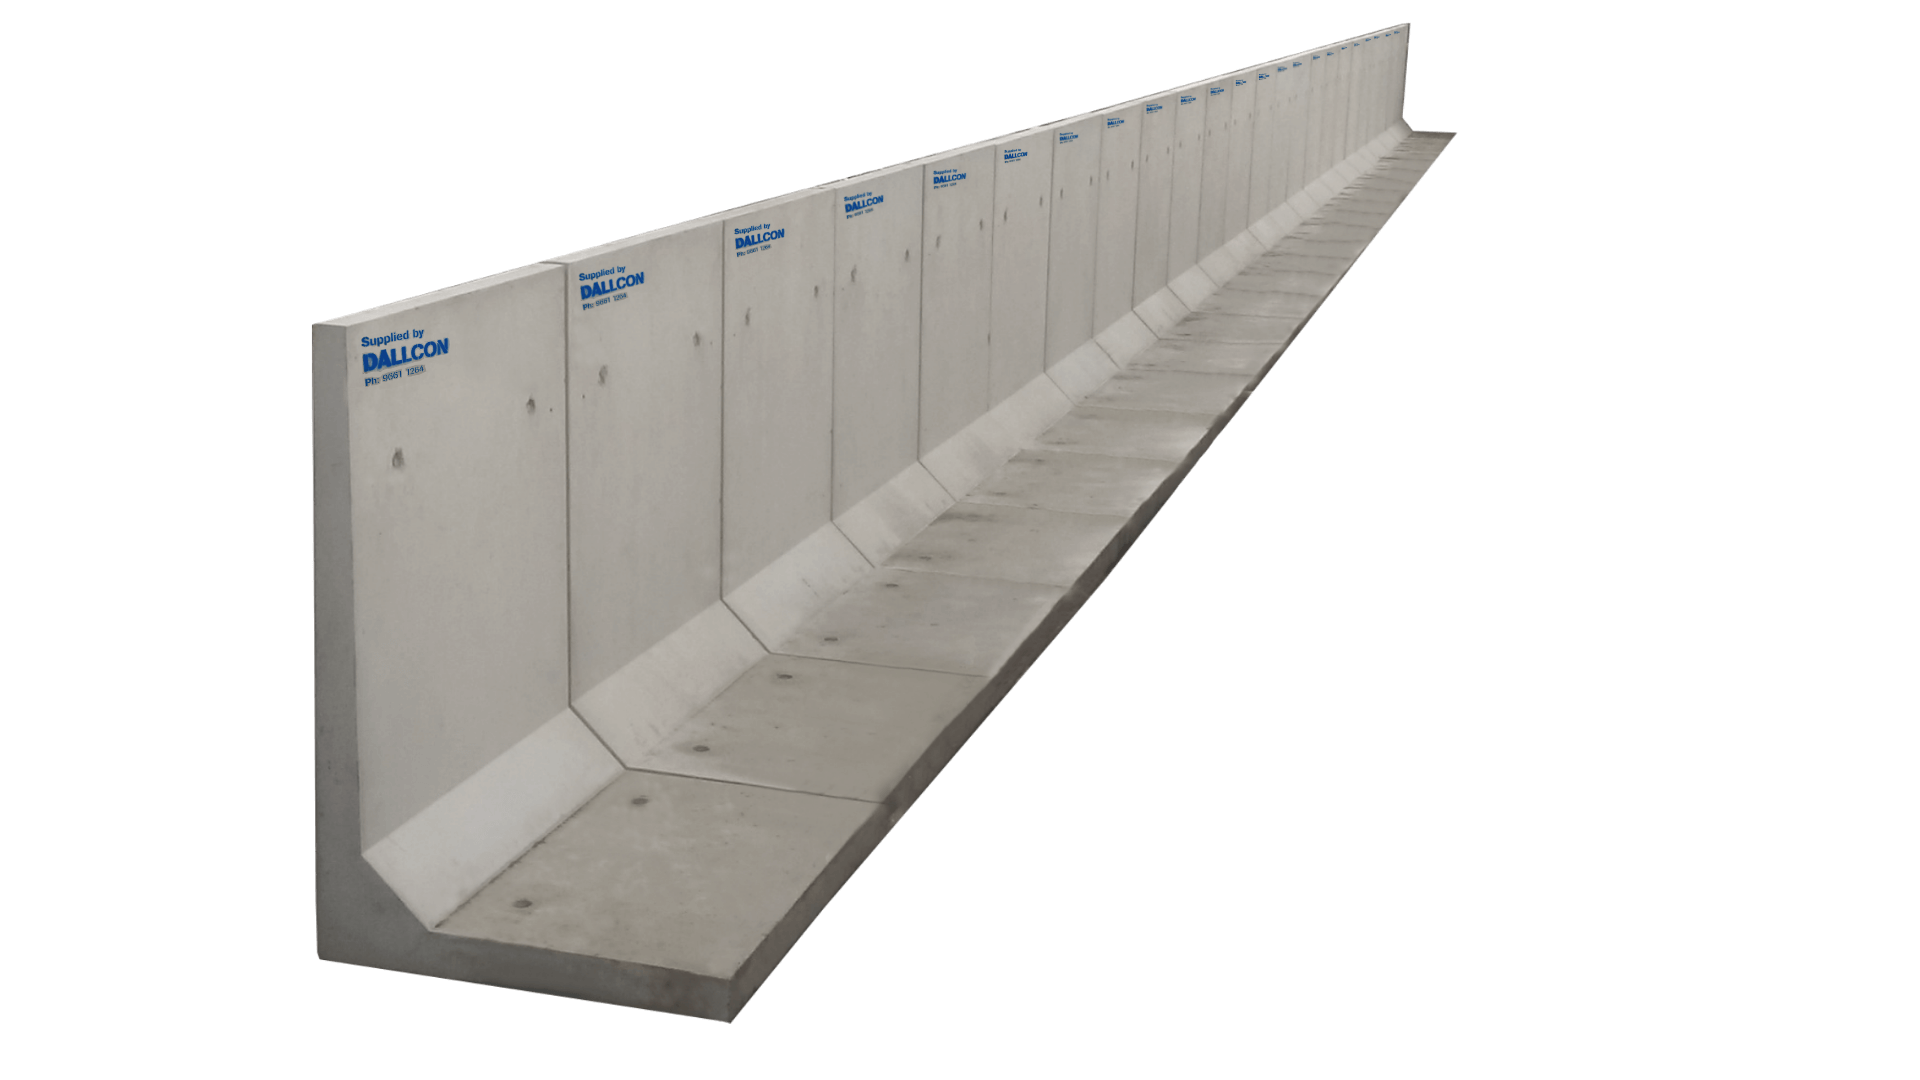 Retaining Wall Systems Free Delivery 500 Km Dallcon